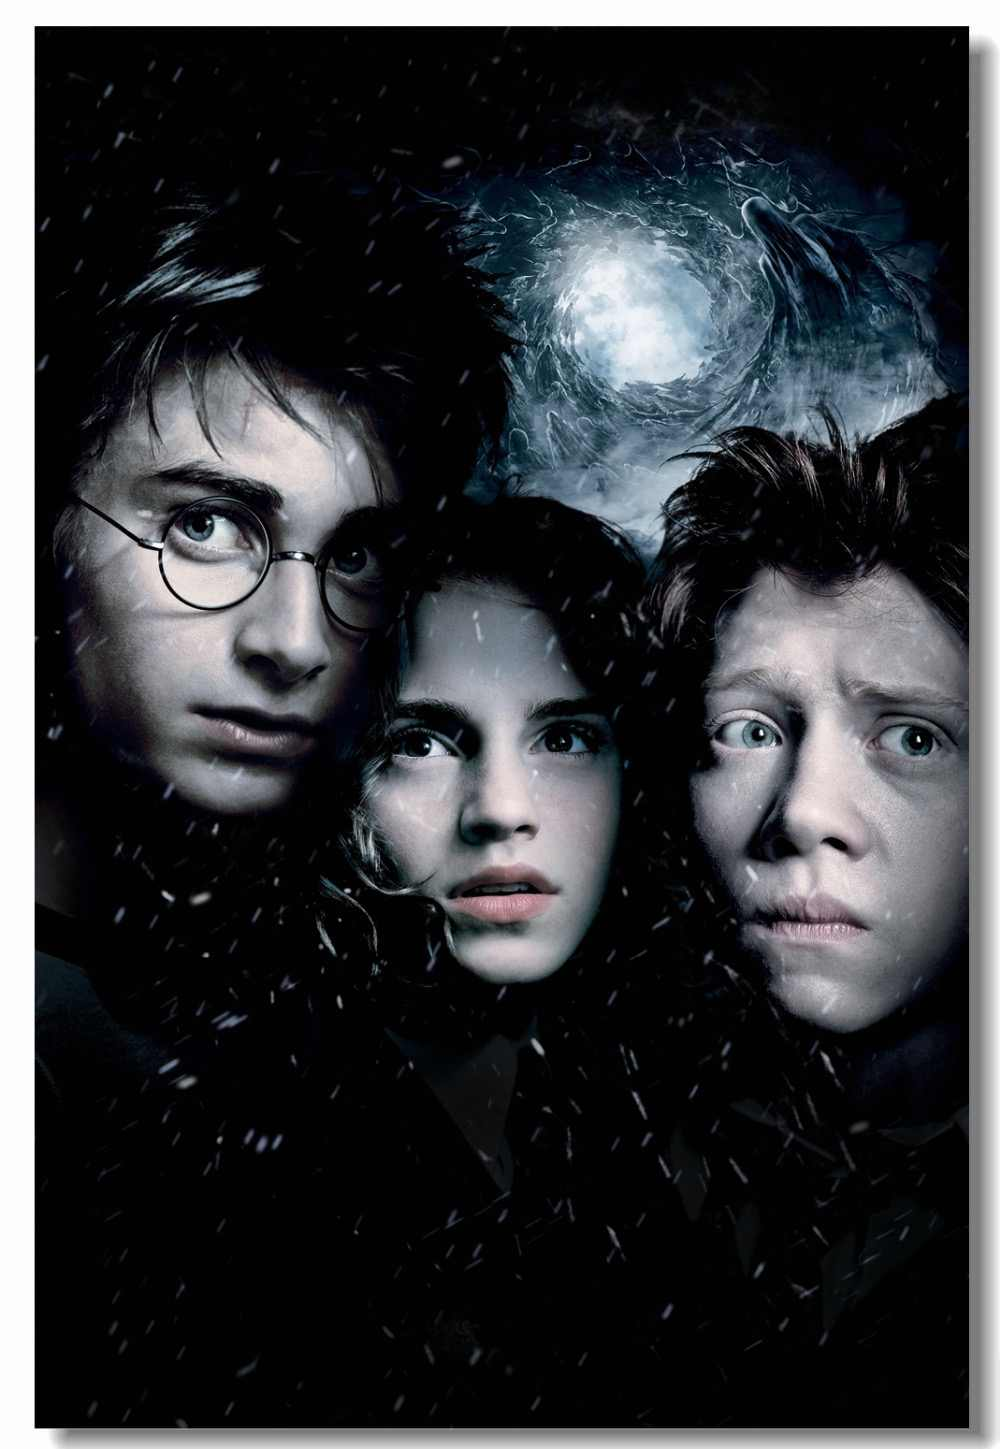 Custom Canvas Wall Decal Harry Potter Sirius Black Poster Wizard David Thewlis Stickers The Prisoner Of Azkaban Wallpapers